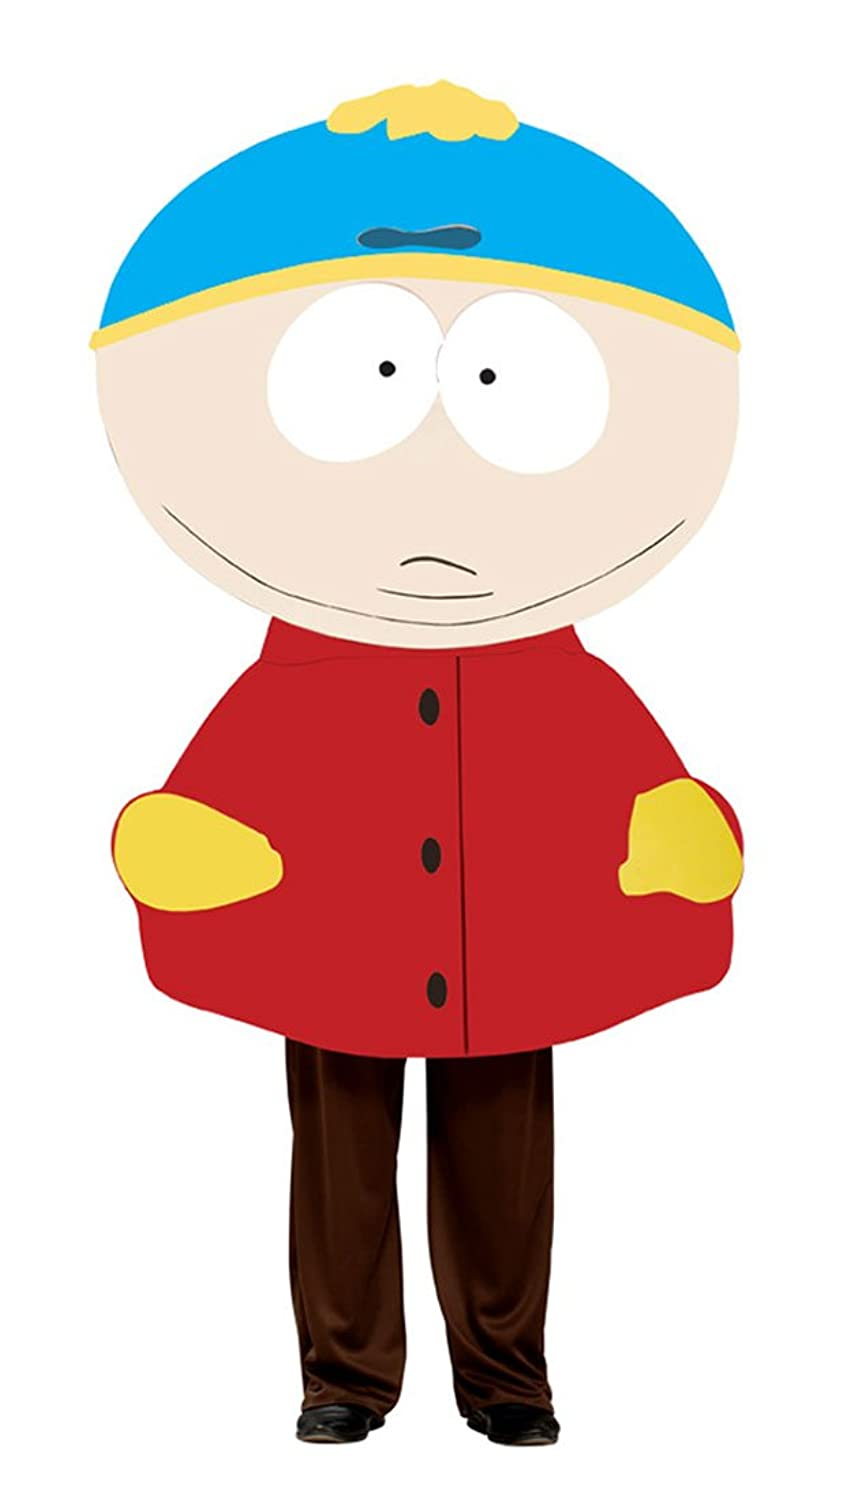 South Park Halloween Costumes - Best Costumes for Halloween